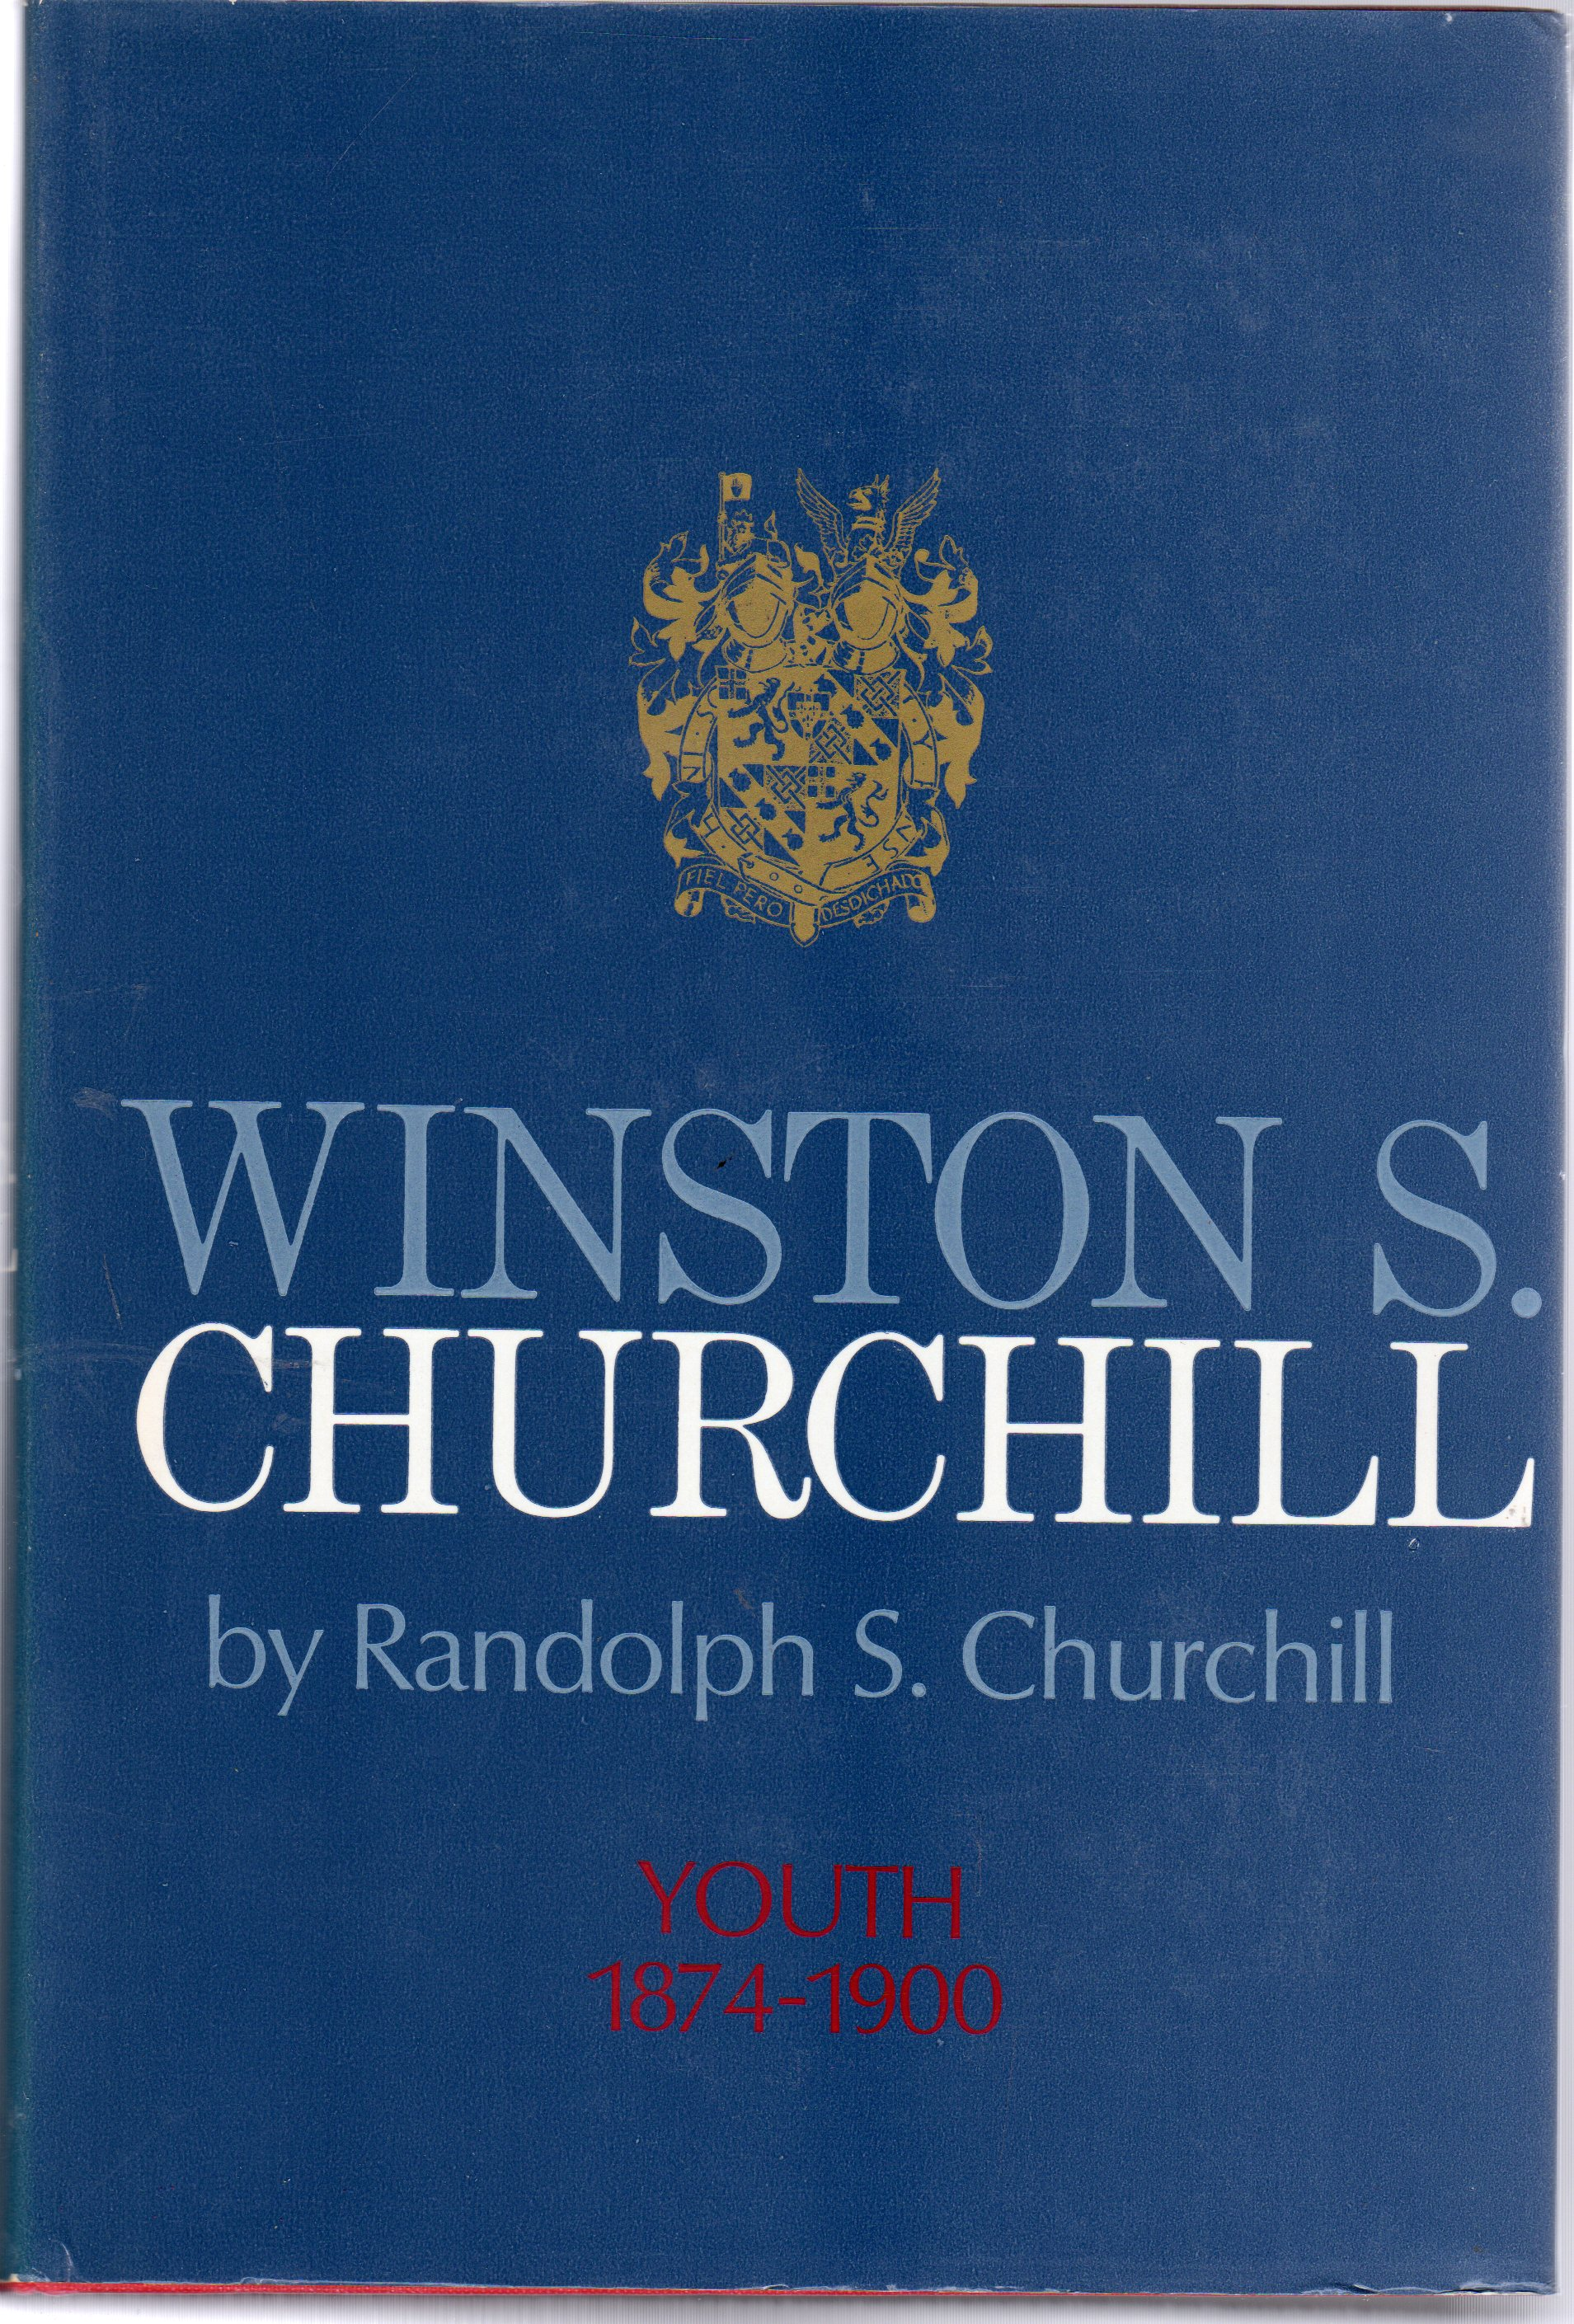 Image for Winston S. Churchill  - Youth 1874-1900